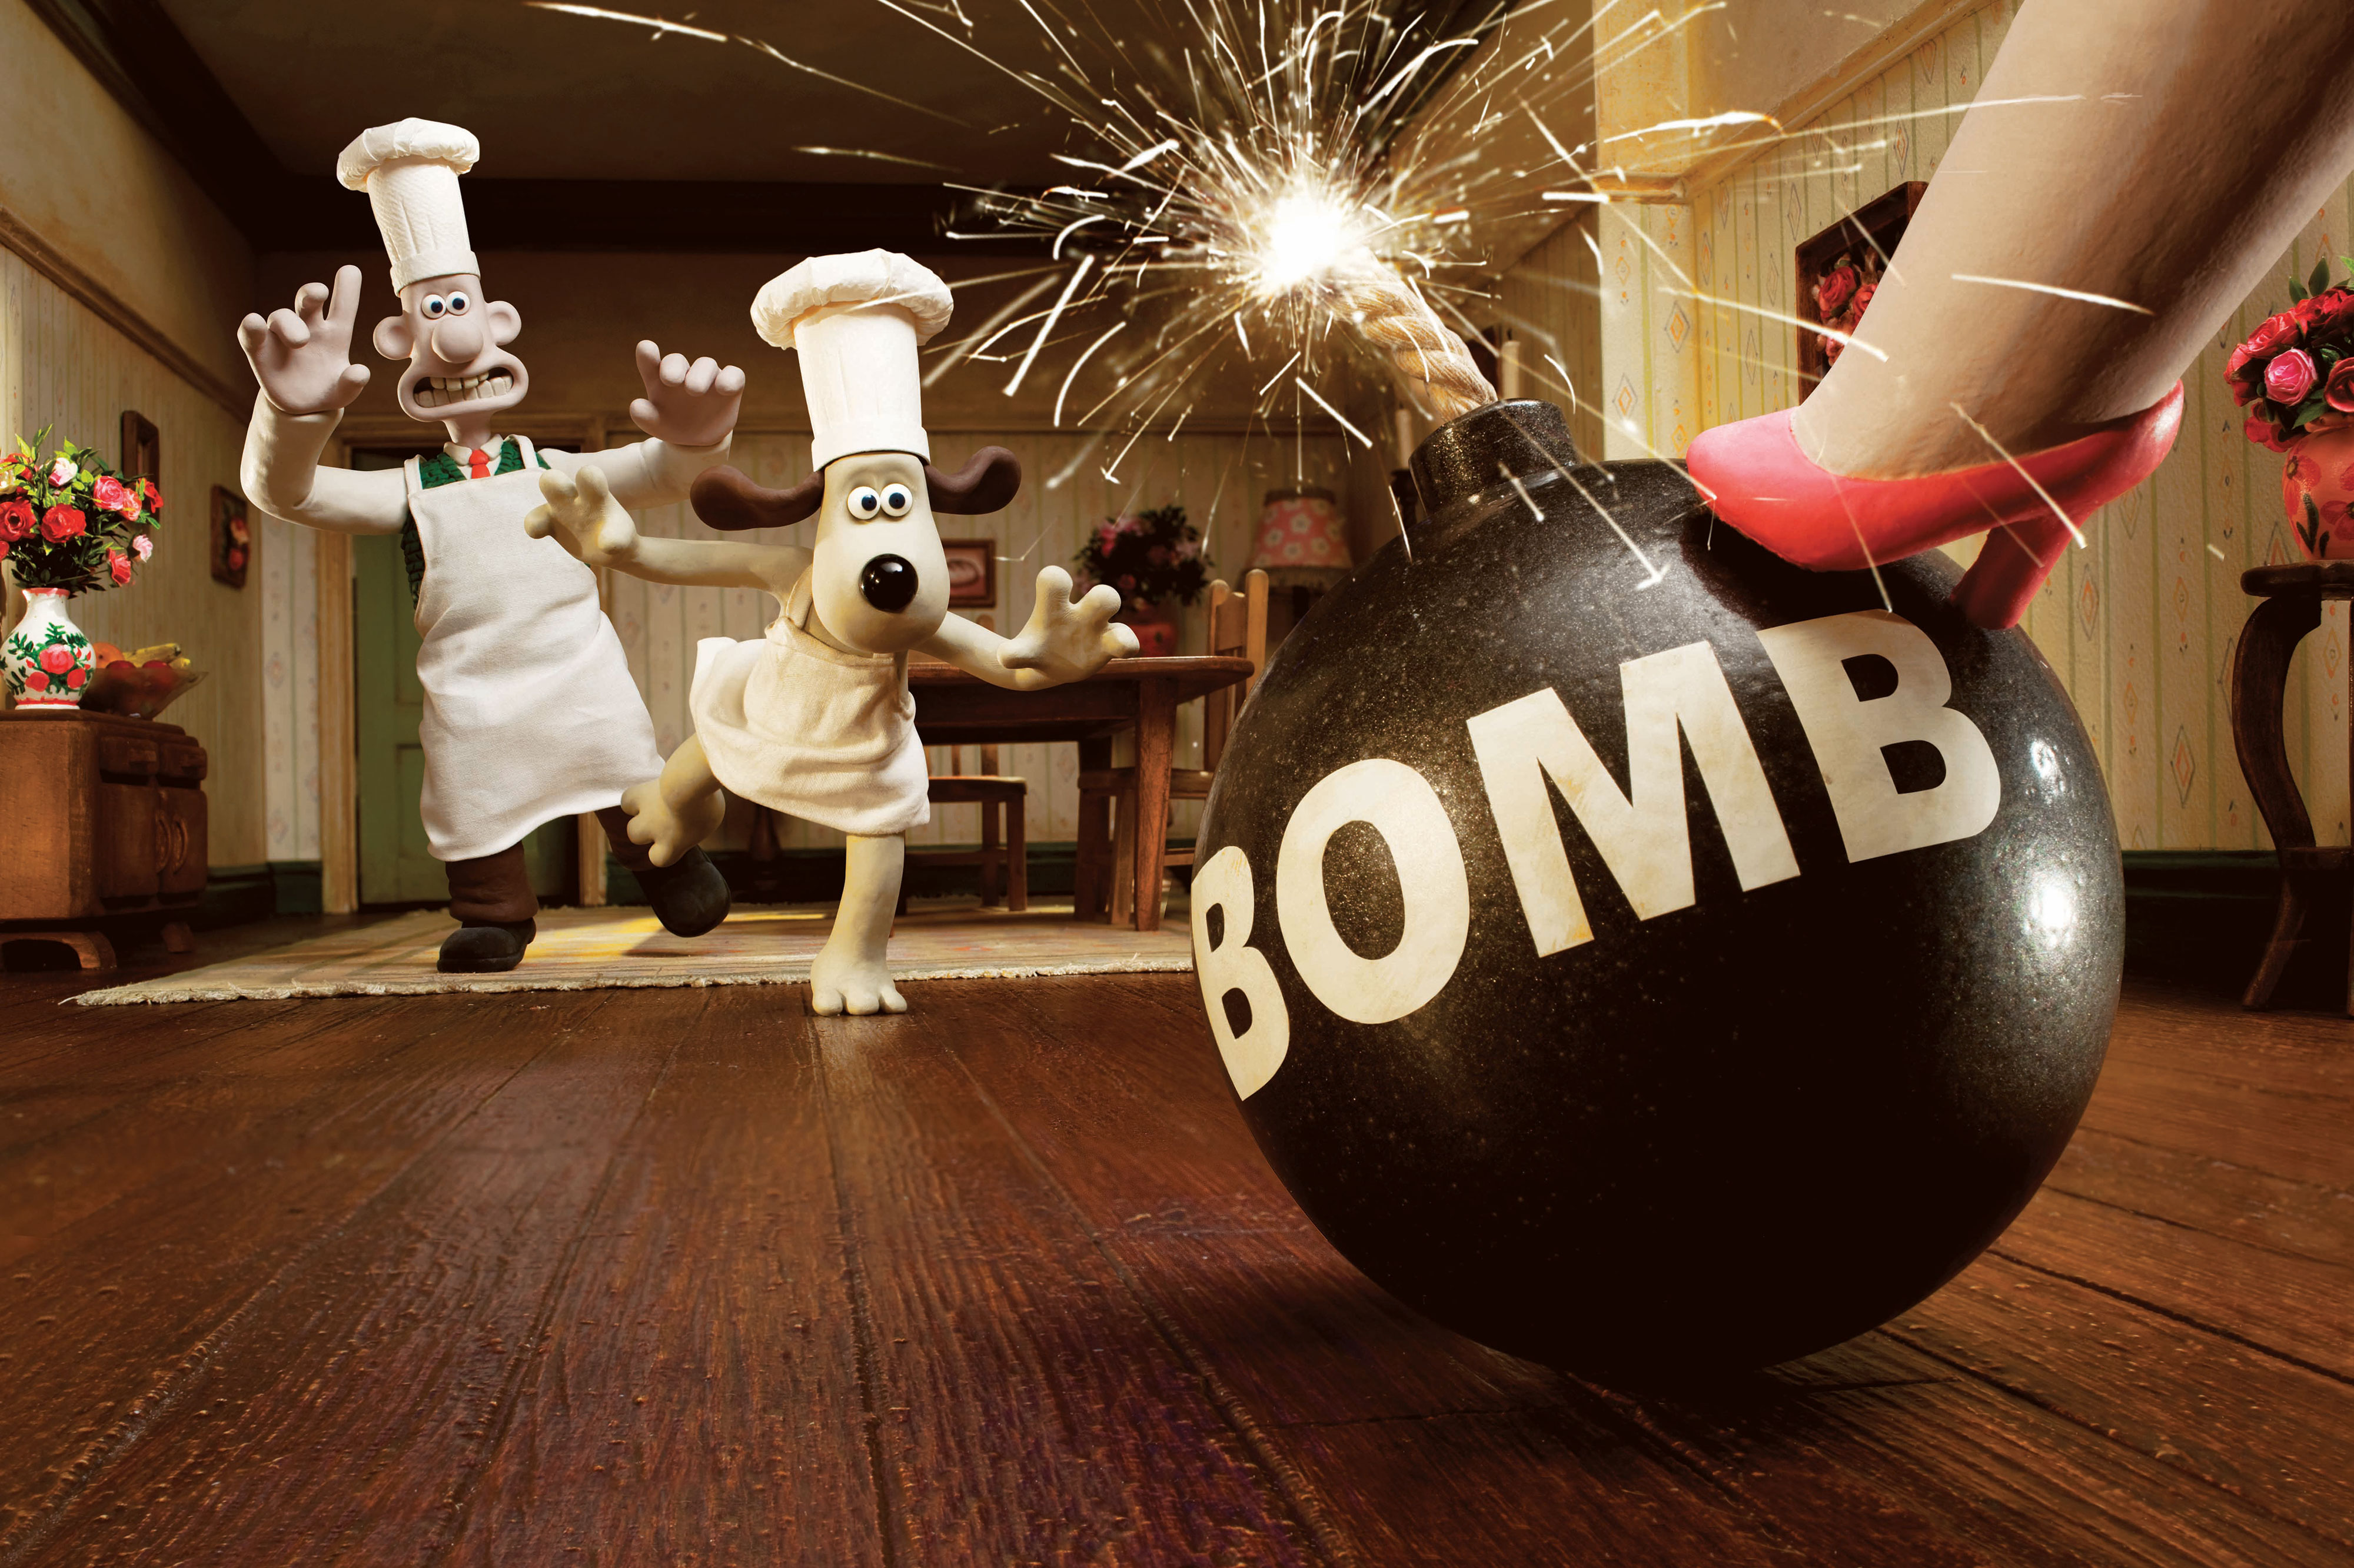 Wallace and Gromit run to stop a bomb from exploding